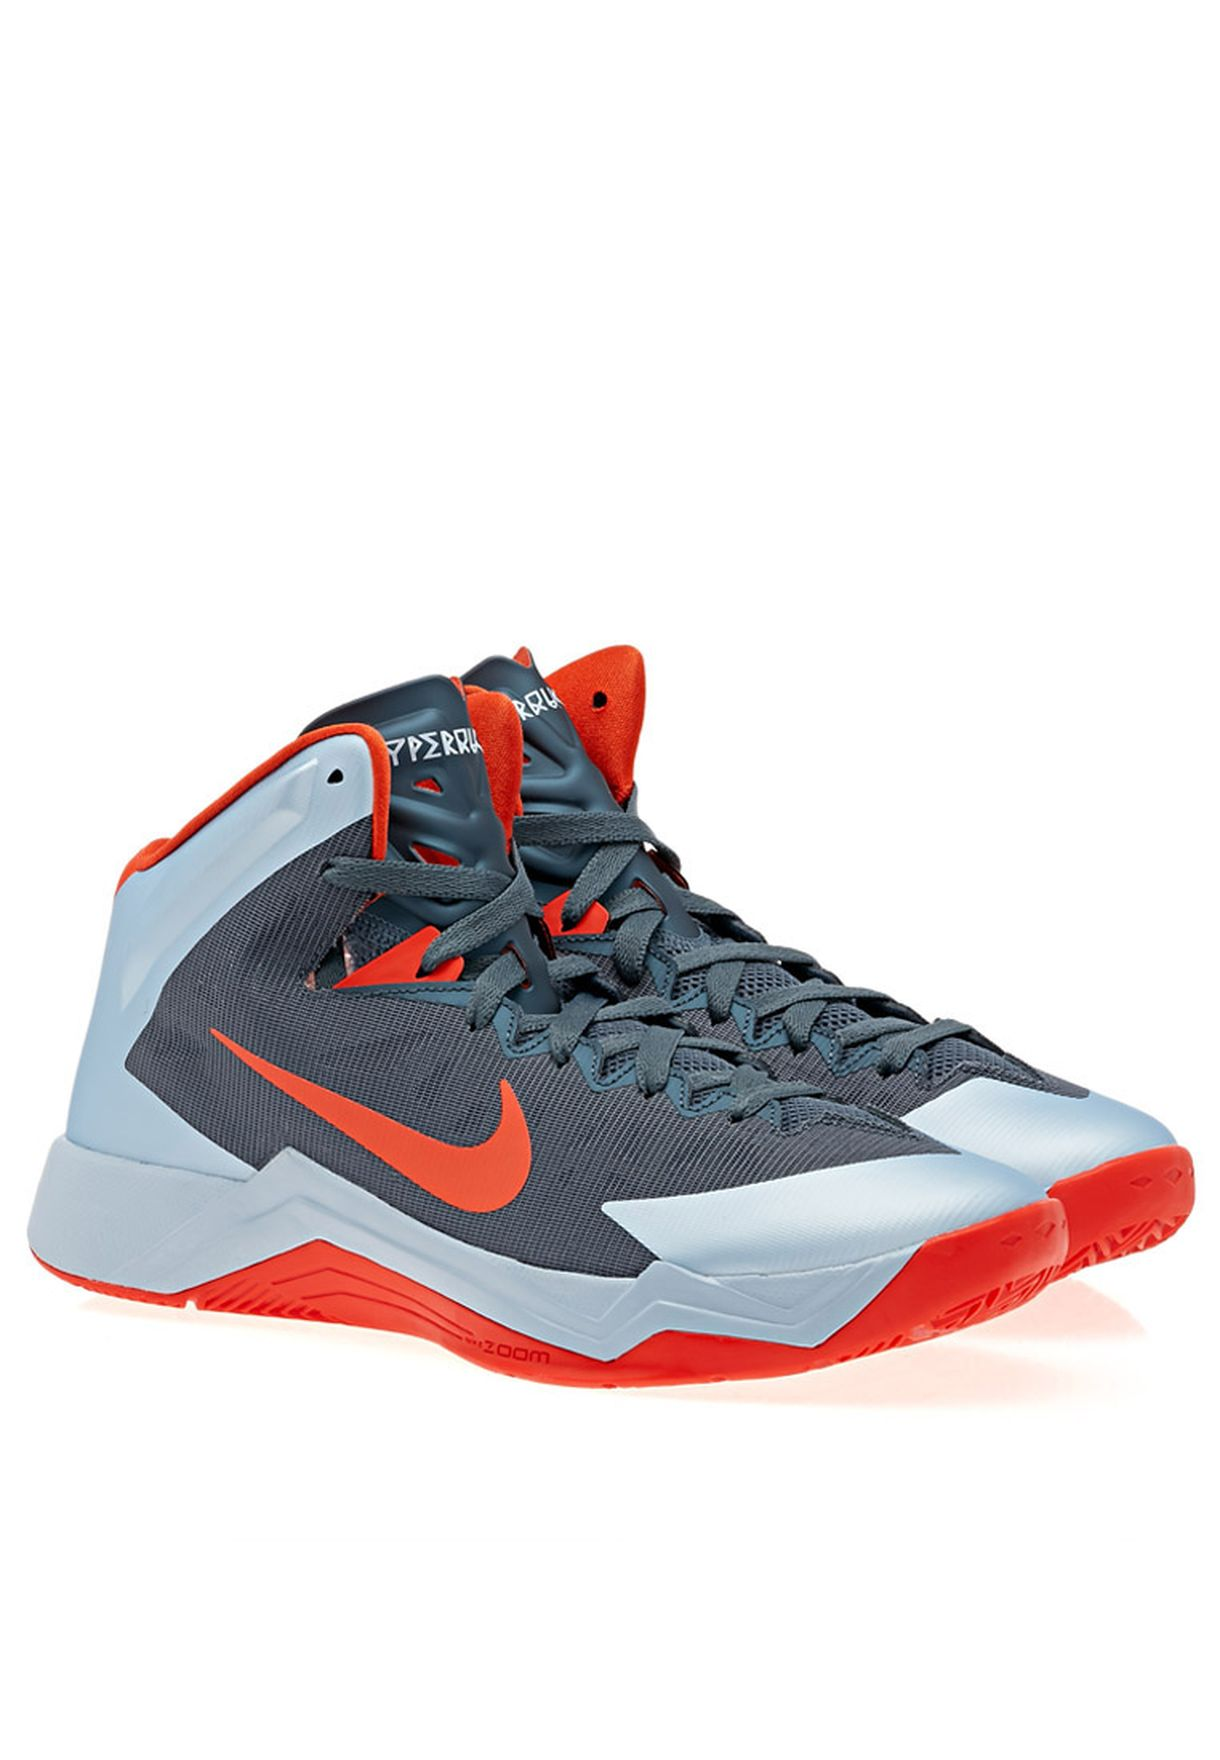 promo code d97a6 7c0bb HYPER QUICKNESS Basketball Shoes